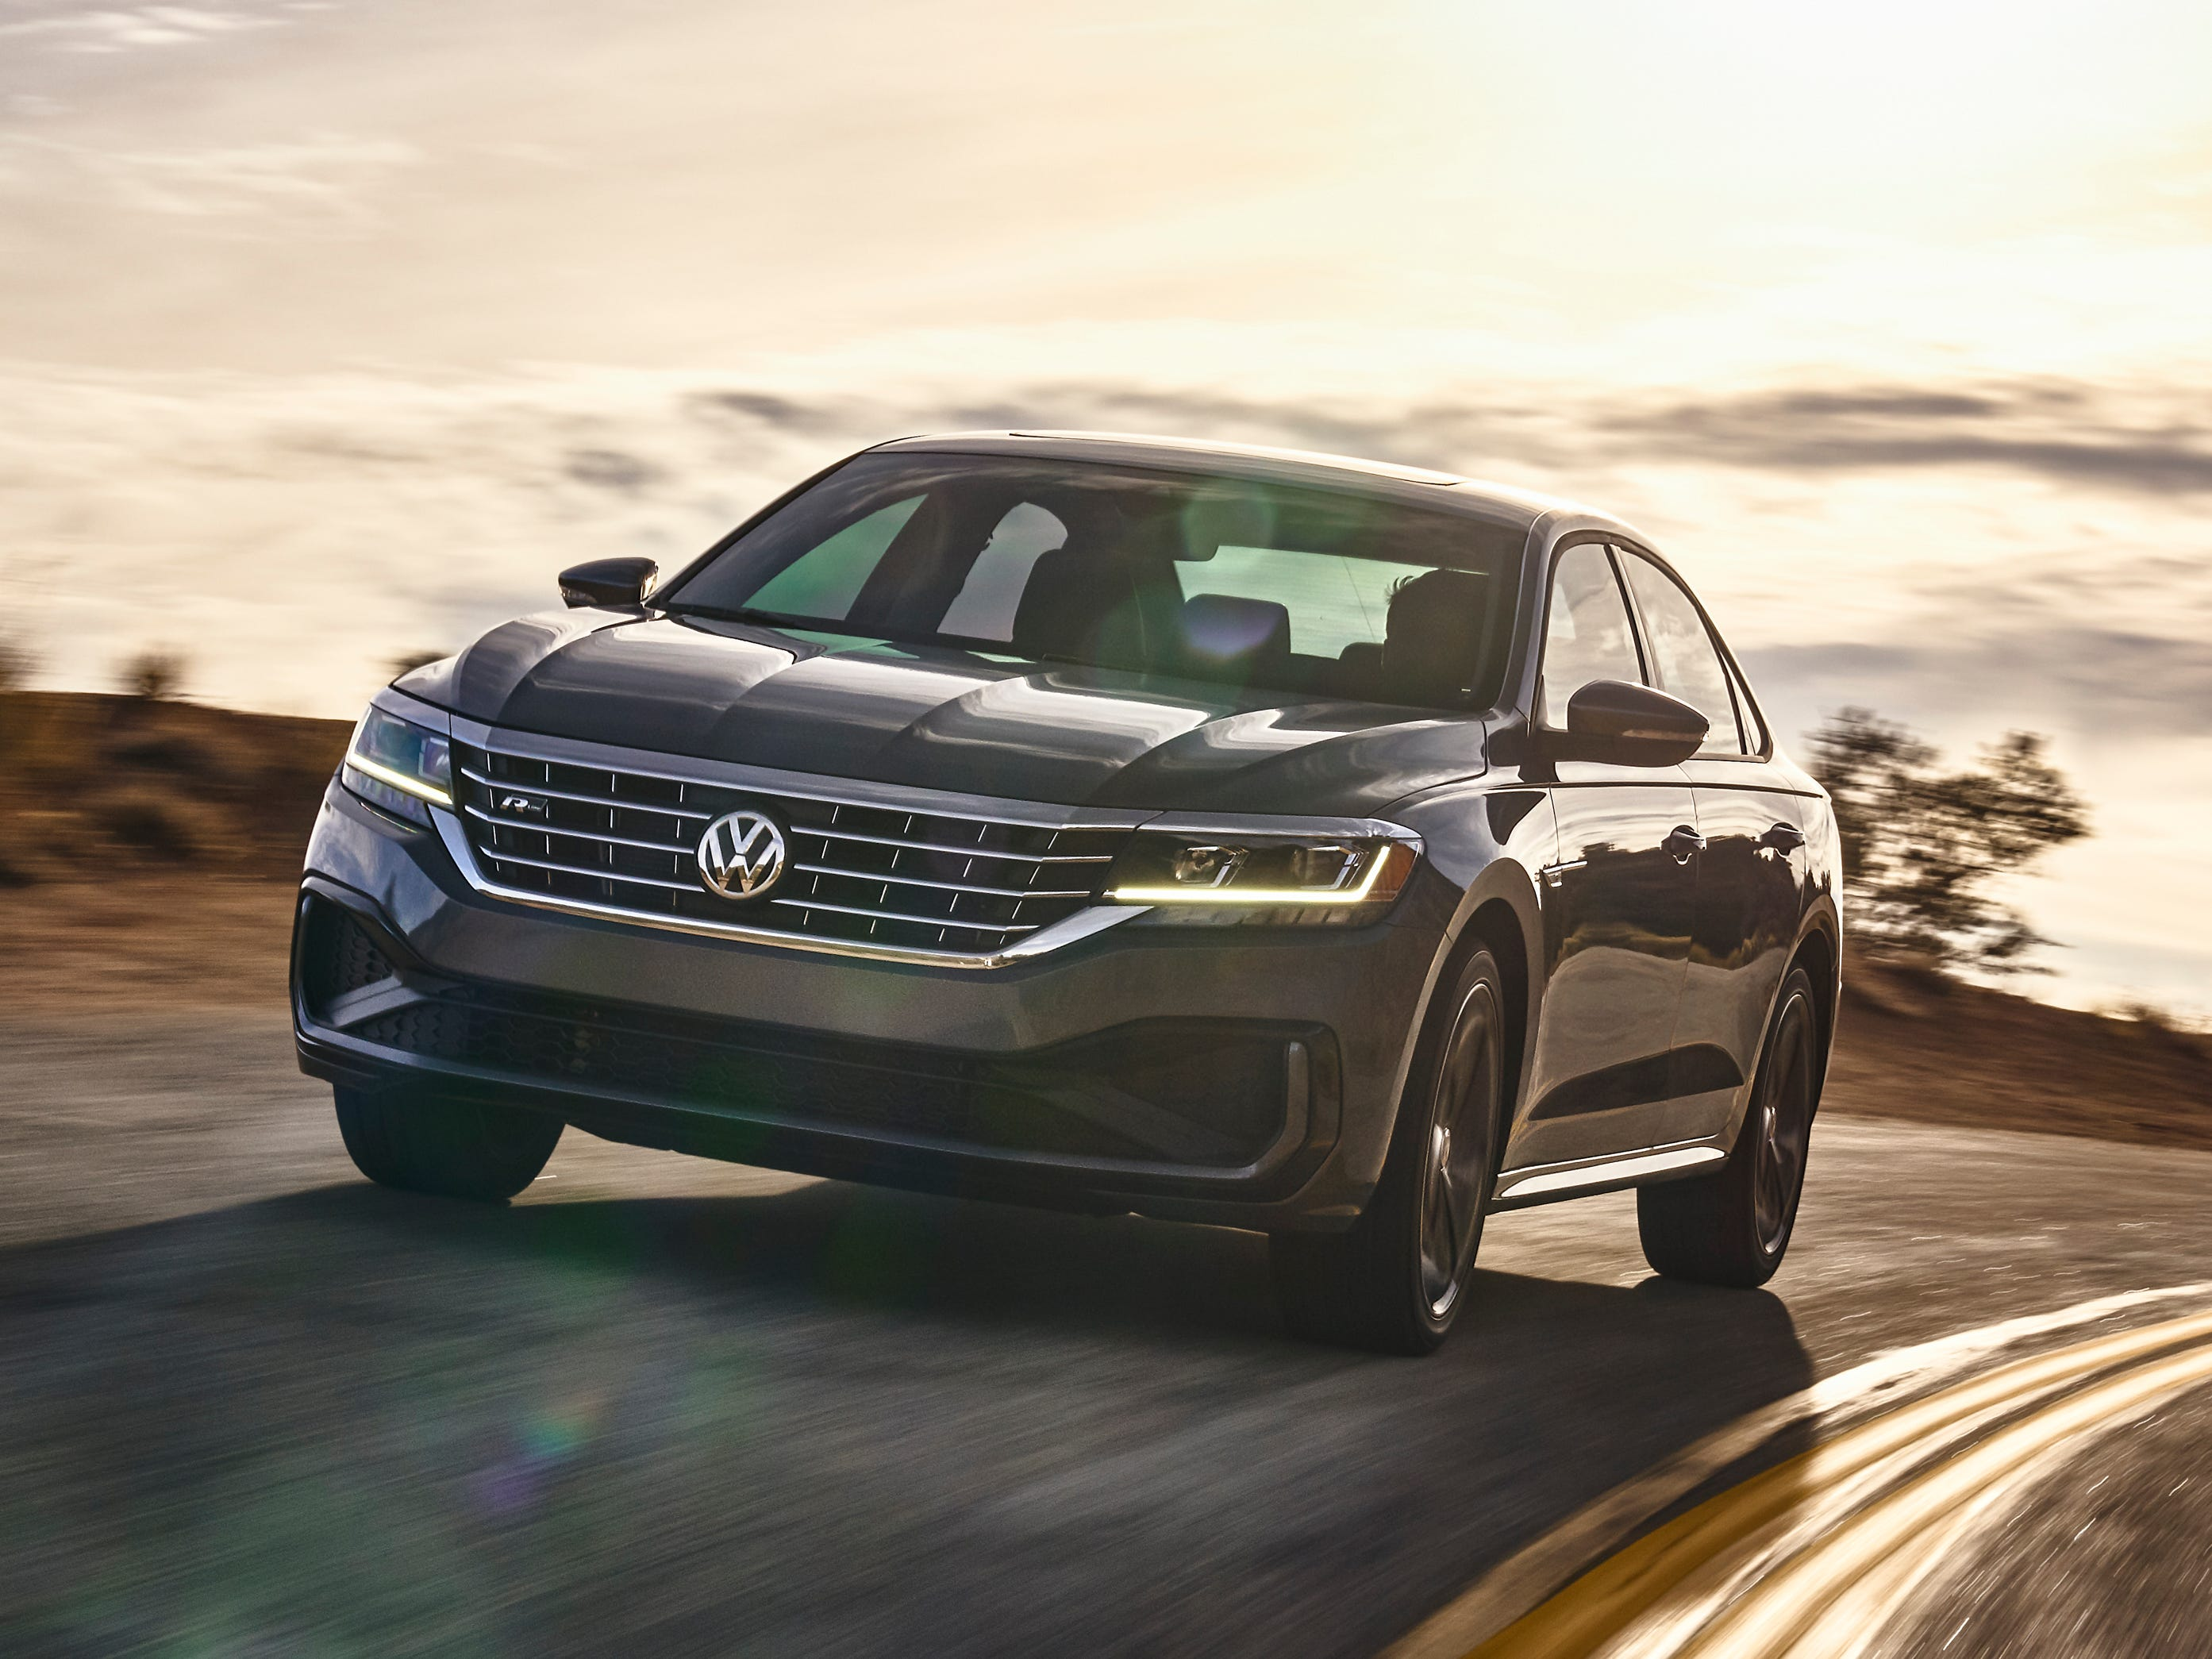 Every Passat model will come with a  warranty covering six years or 72,000 miles, whichever occurs first. The warranty is to be transferable to a subsequent owner for its duration.